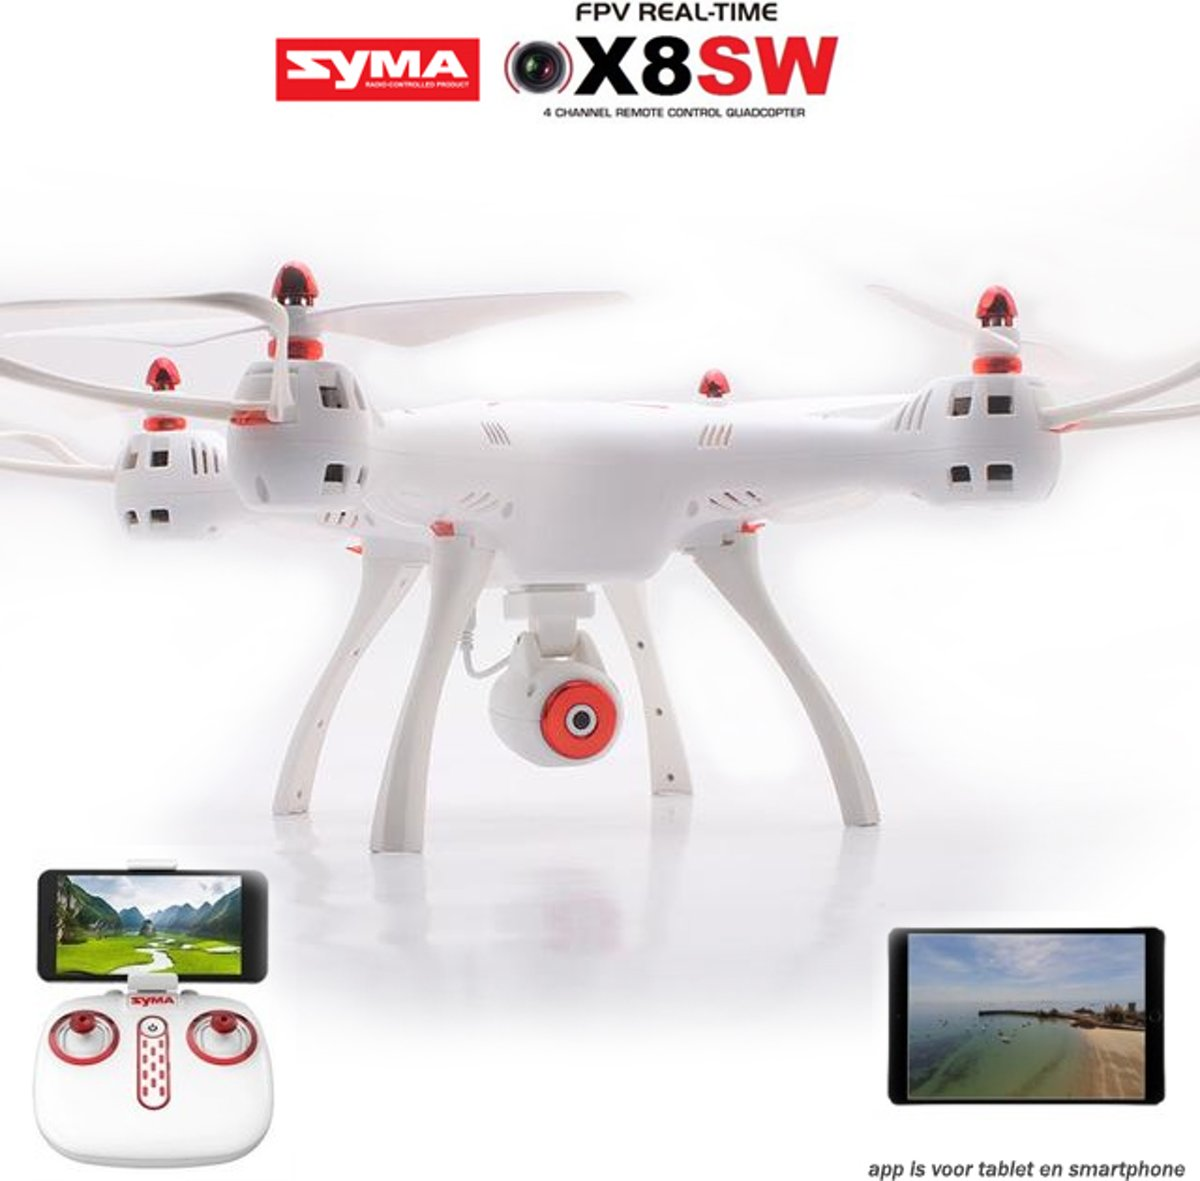 Syma X8SW Drone - 720p Hd live camera  + One Key Take-off